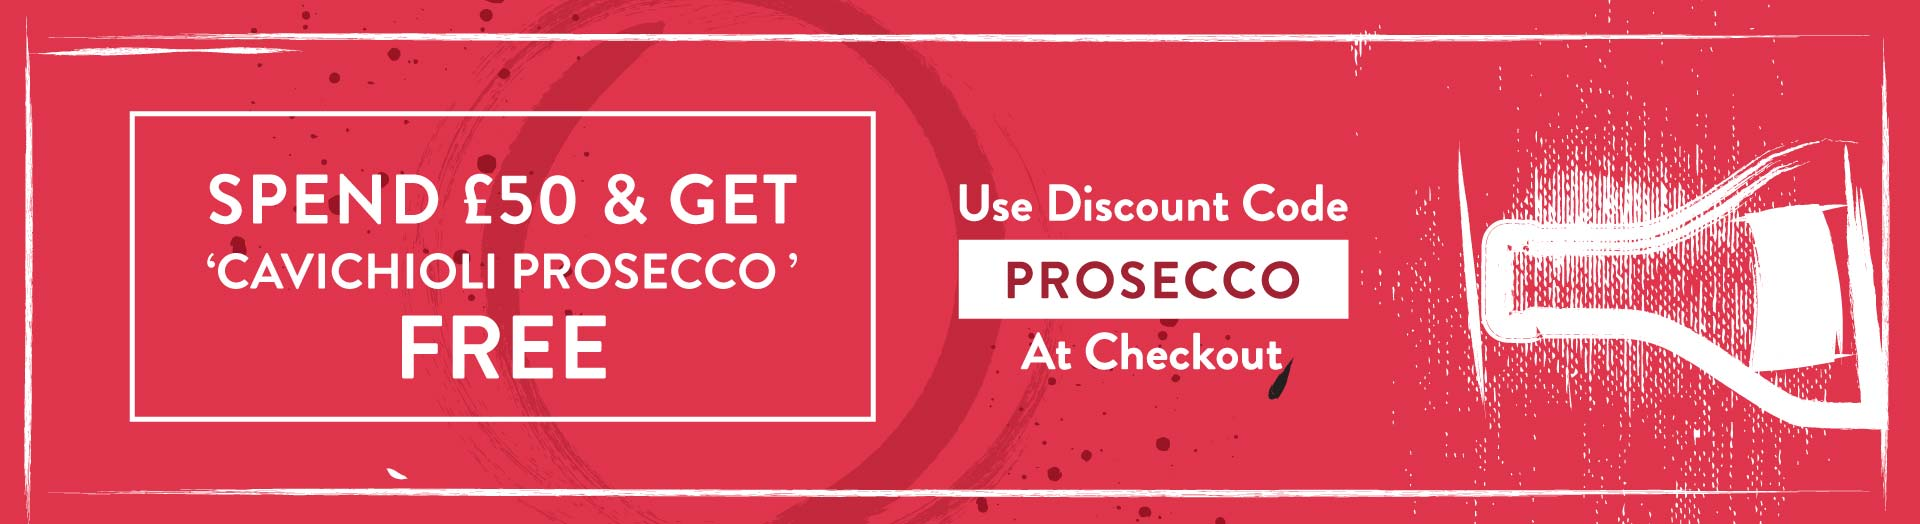 free-Prosecco-page-banner